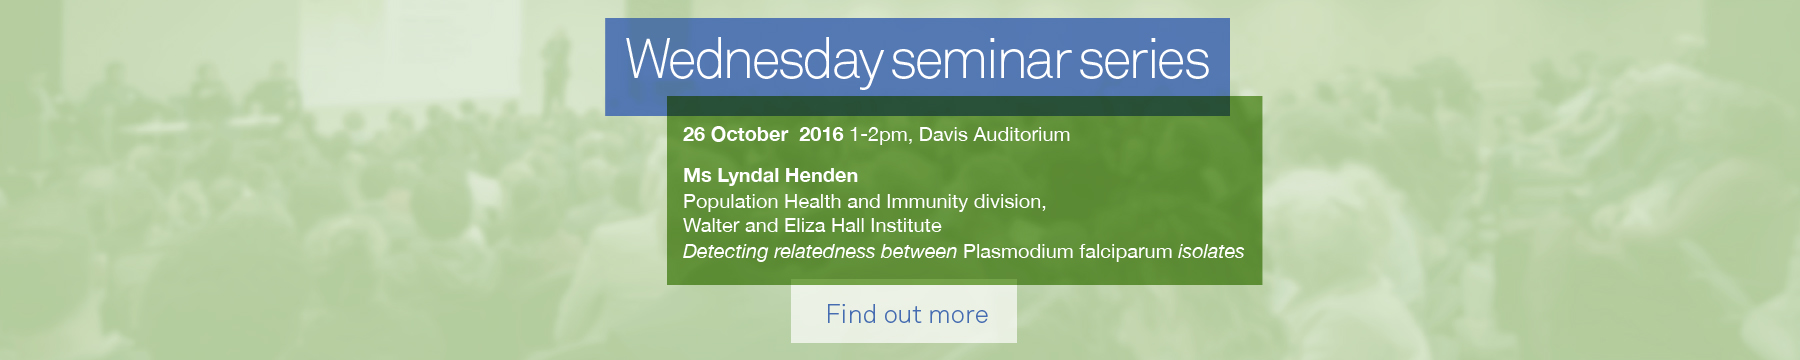 Wednesday seminar series promotion